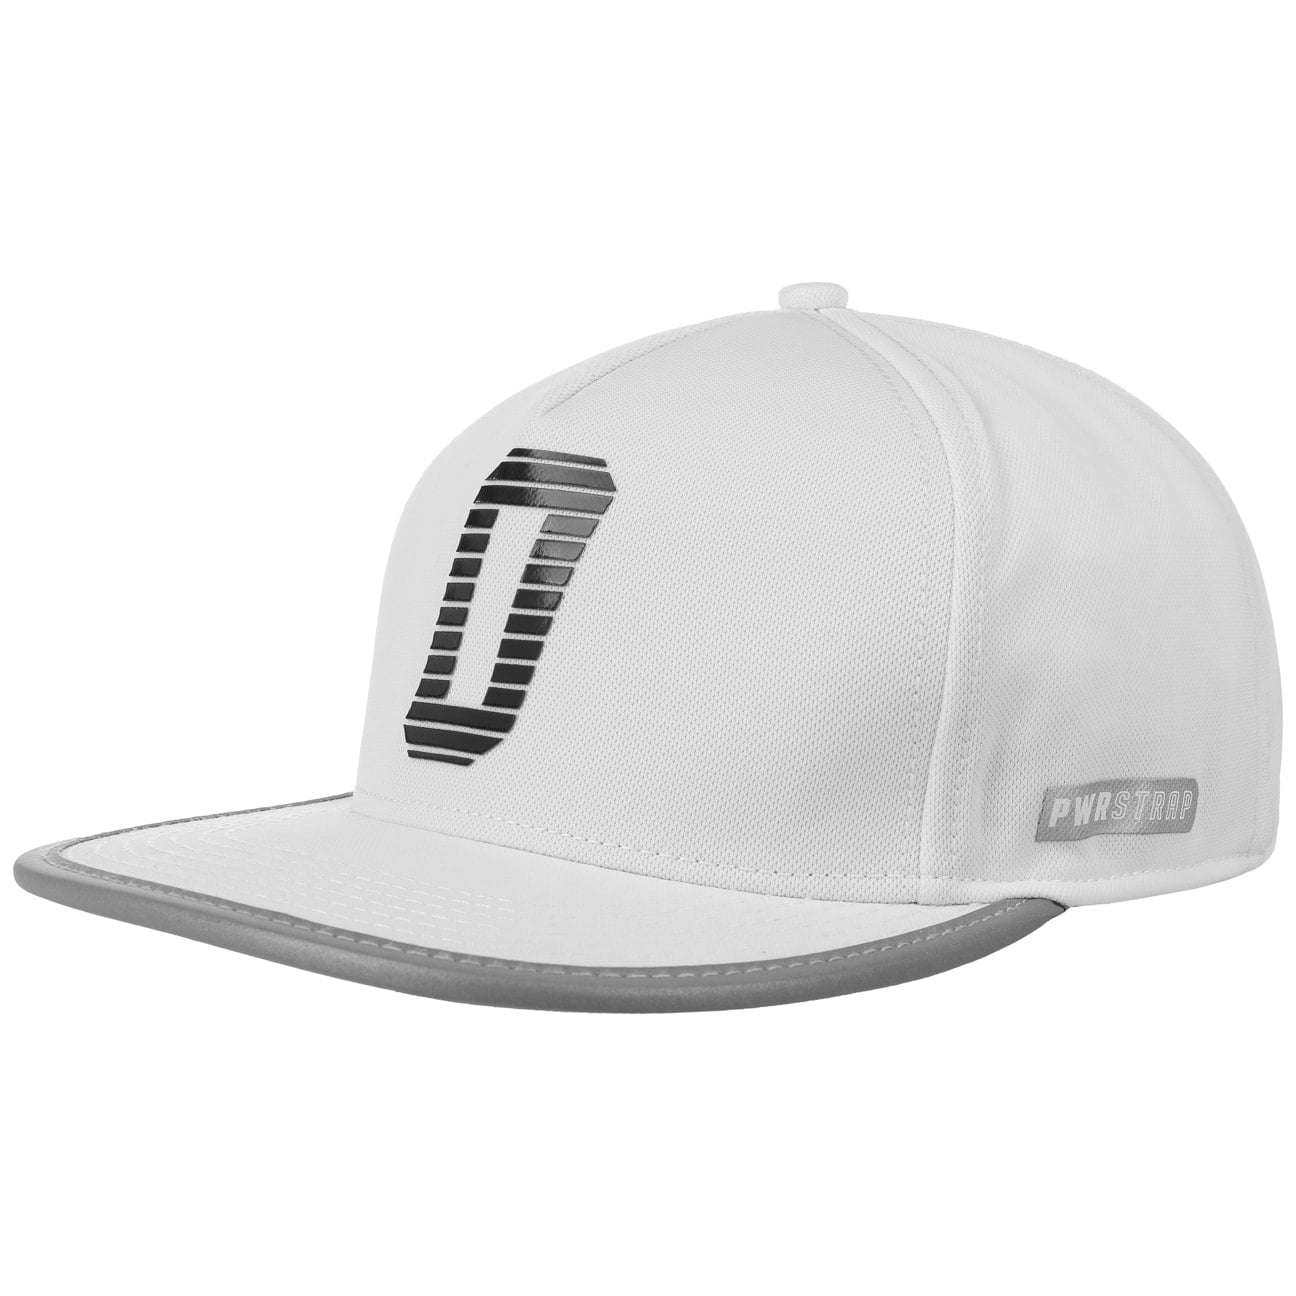 Casquette PWRSTRAP Strapback by Official Headwear  baseball cap